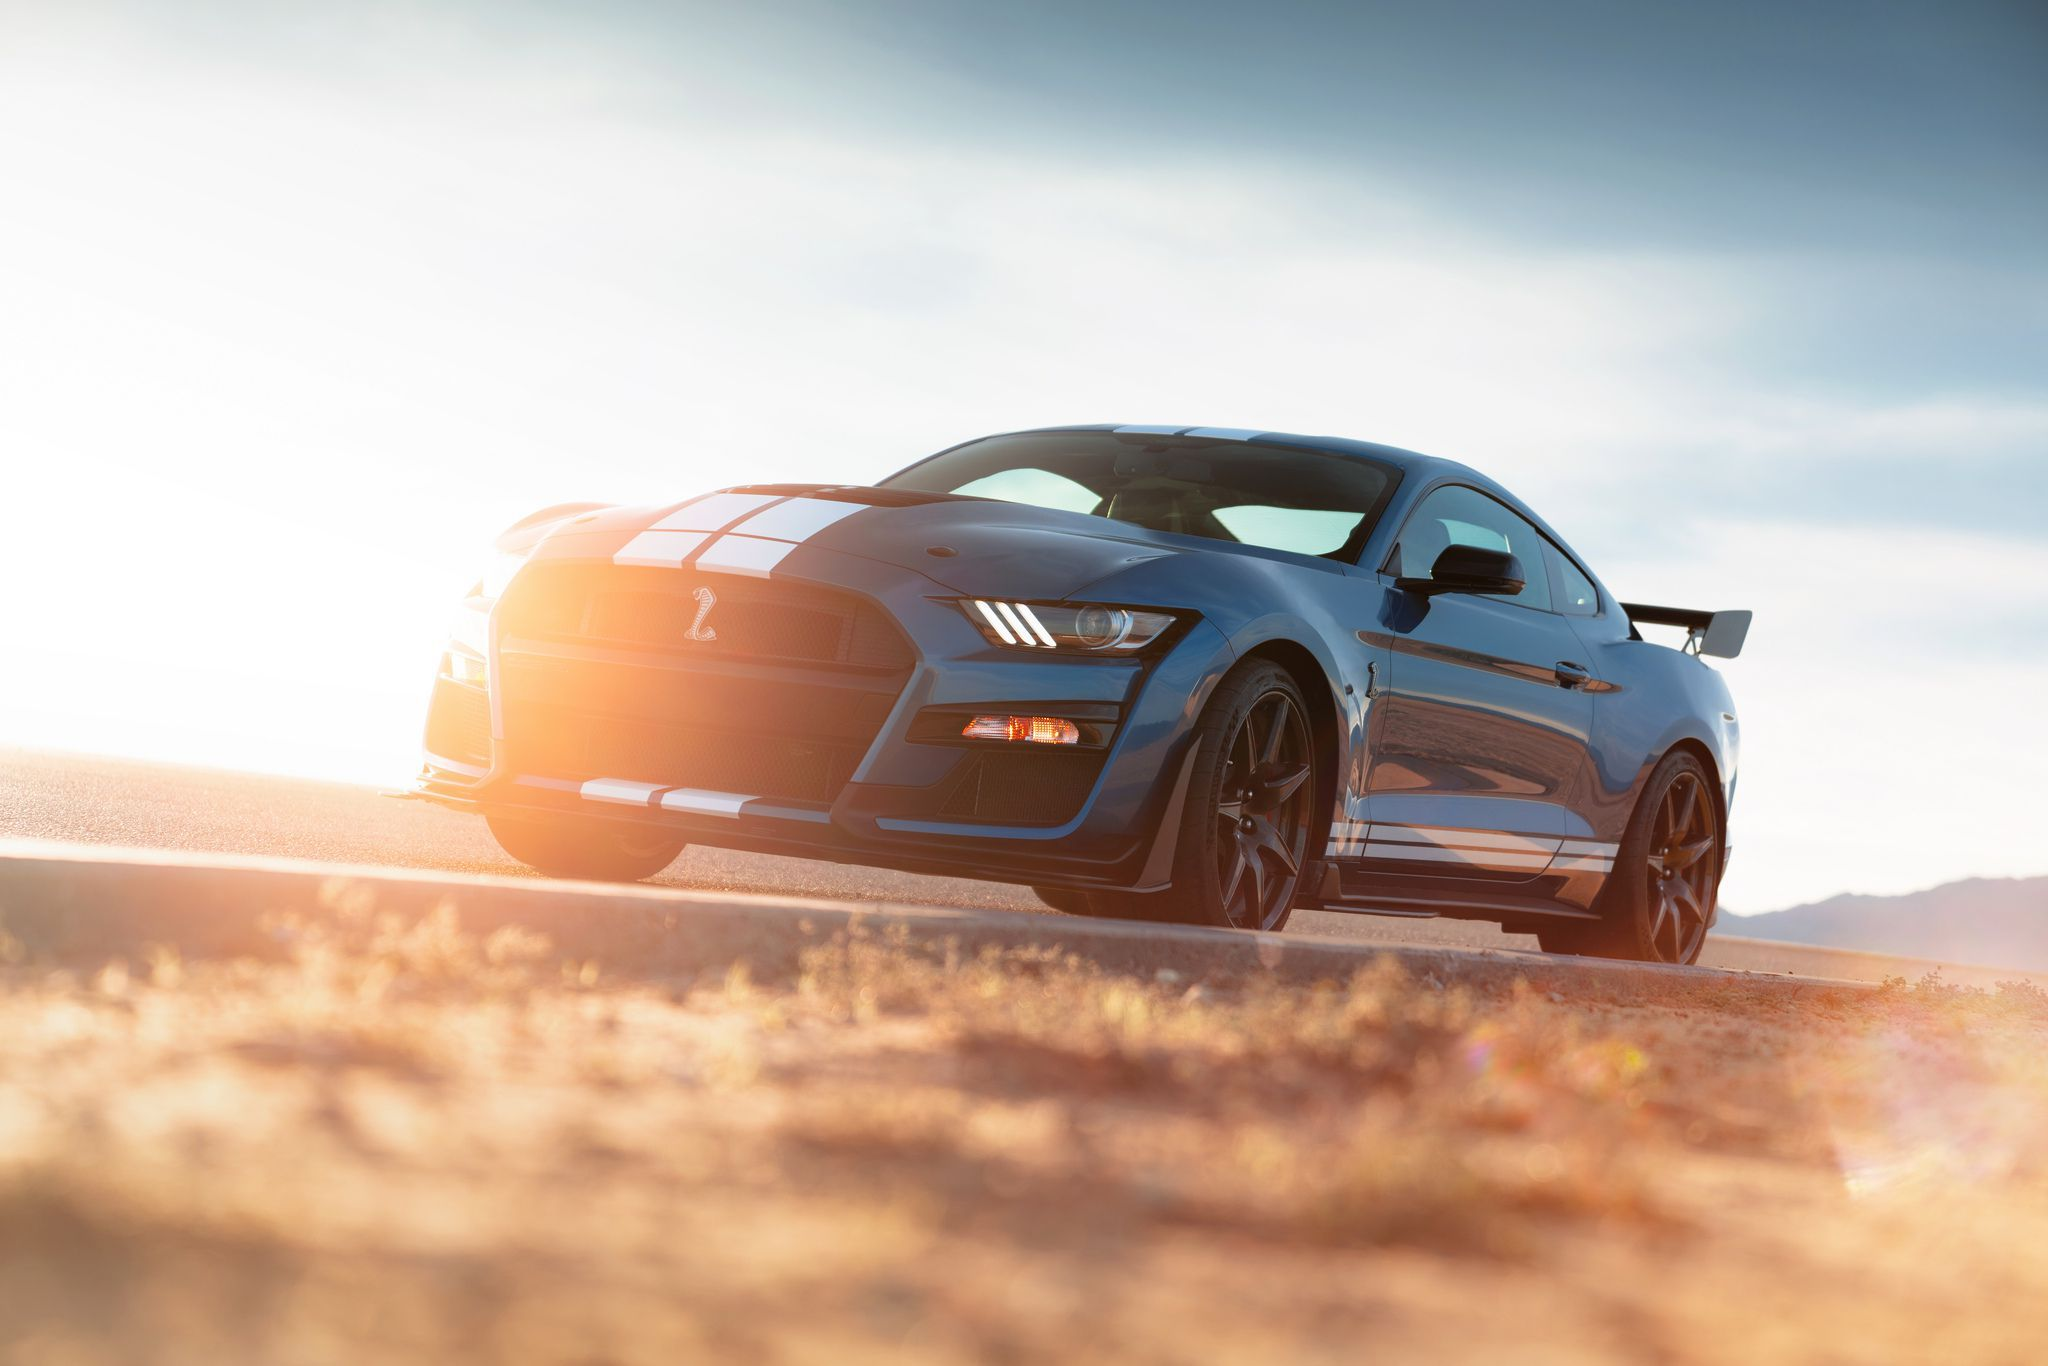 2020 Ford Mustang Shelby GT500 - in sunrise